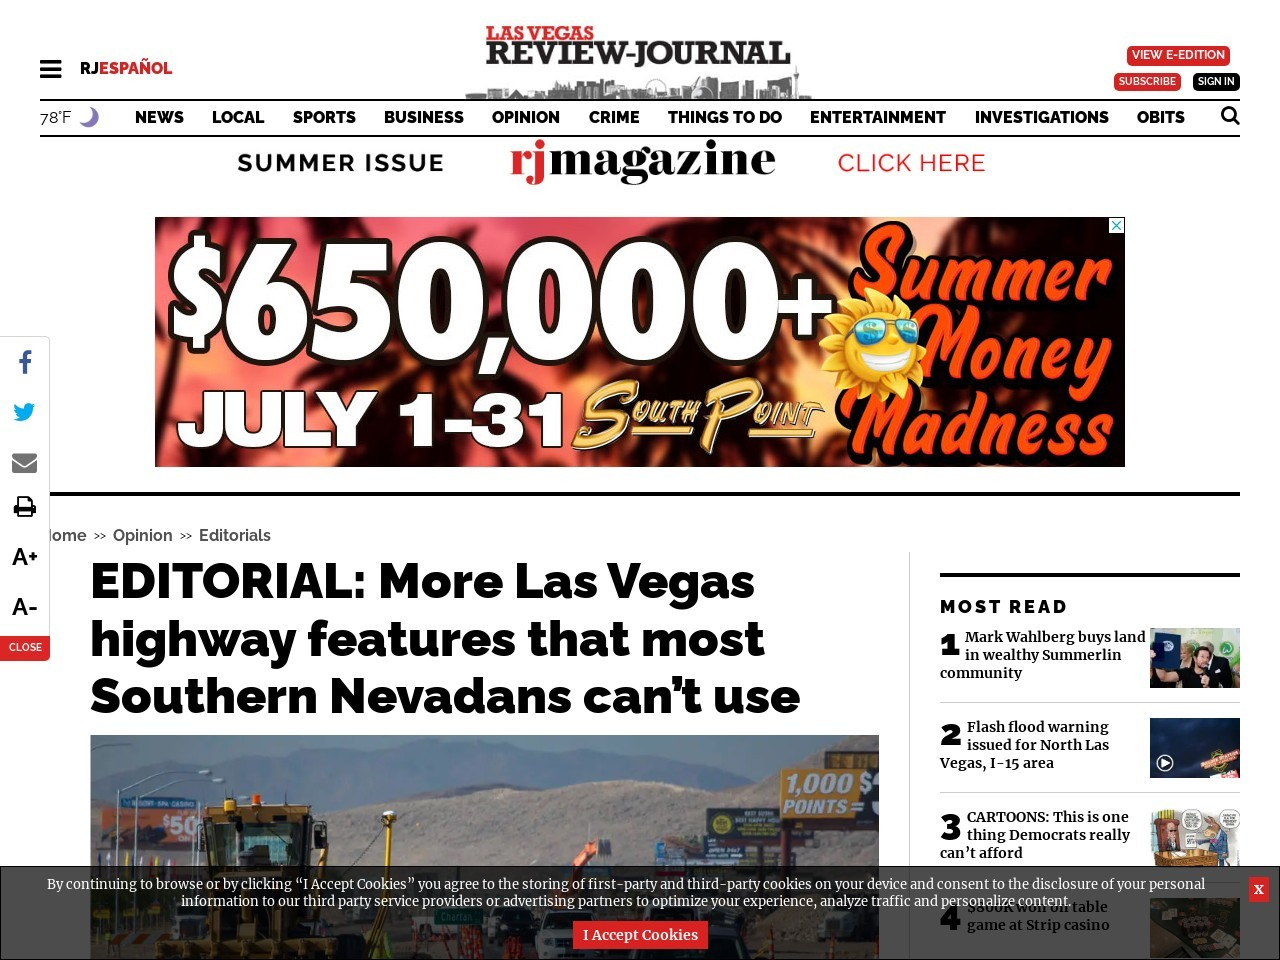 EDITORIAL: More Las Vegas highway features that most Southern Nevadans can't use